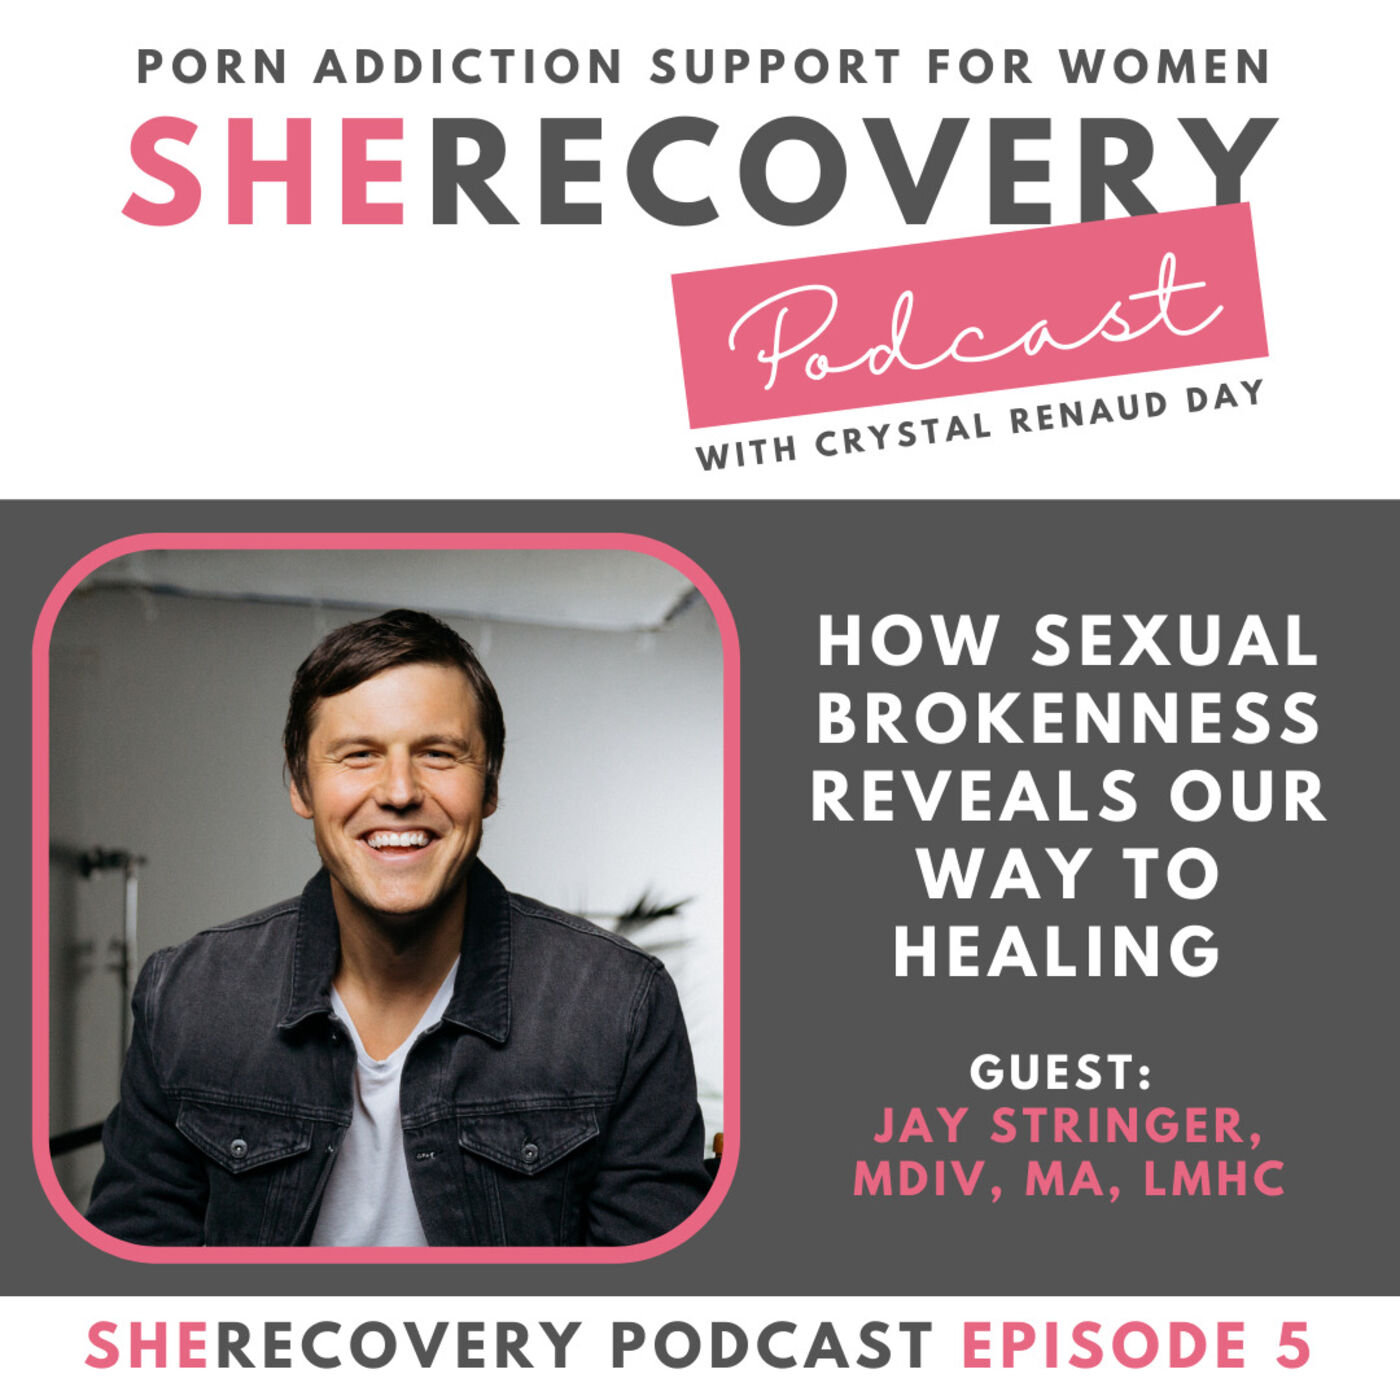 S1 E5: Jay Stringer - How Sexual Brokenness Reveals Our Way to Healing